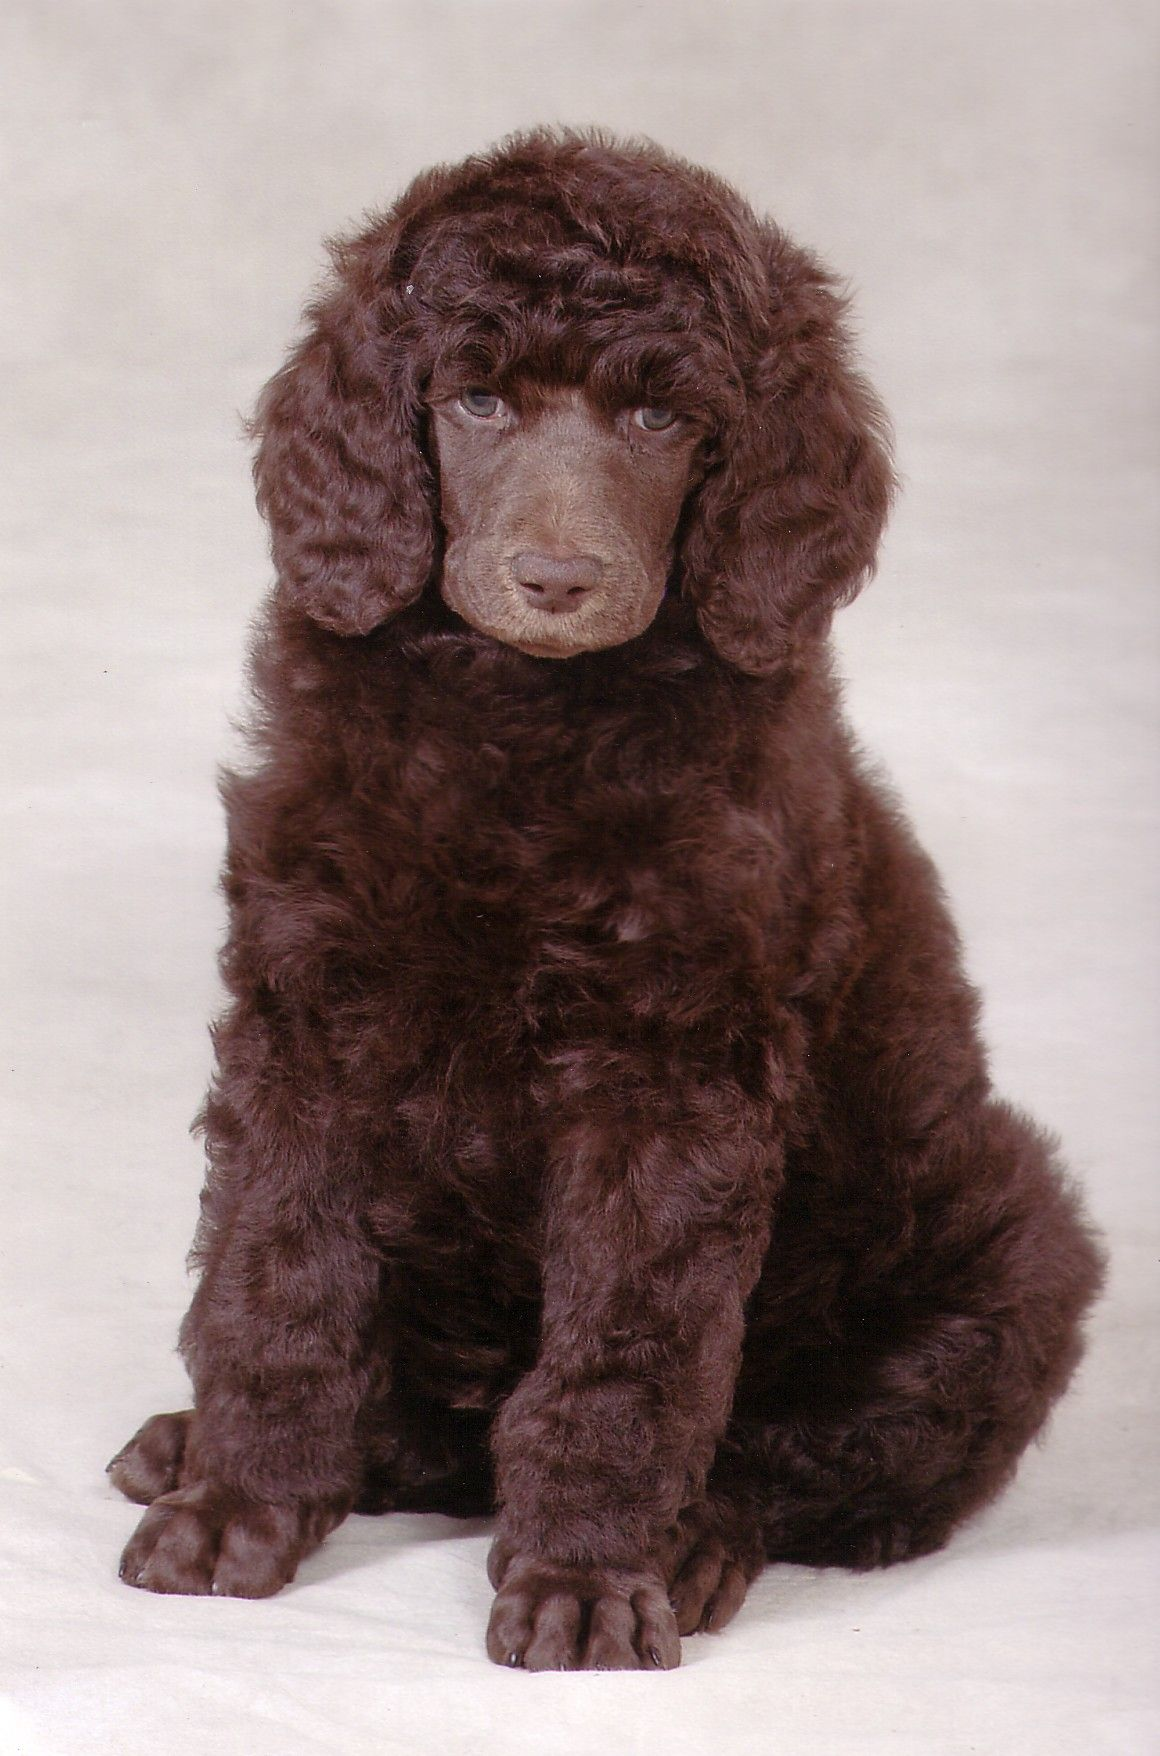 Chocolate standard poodle puppies